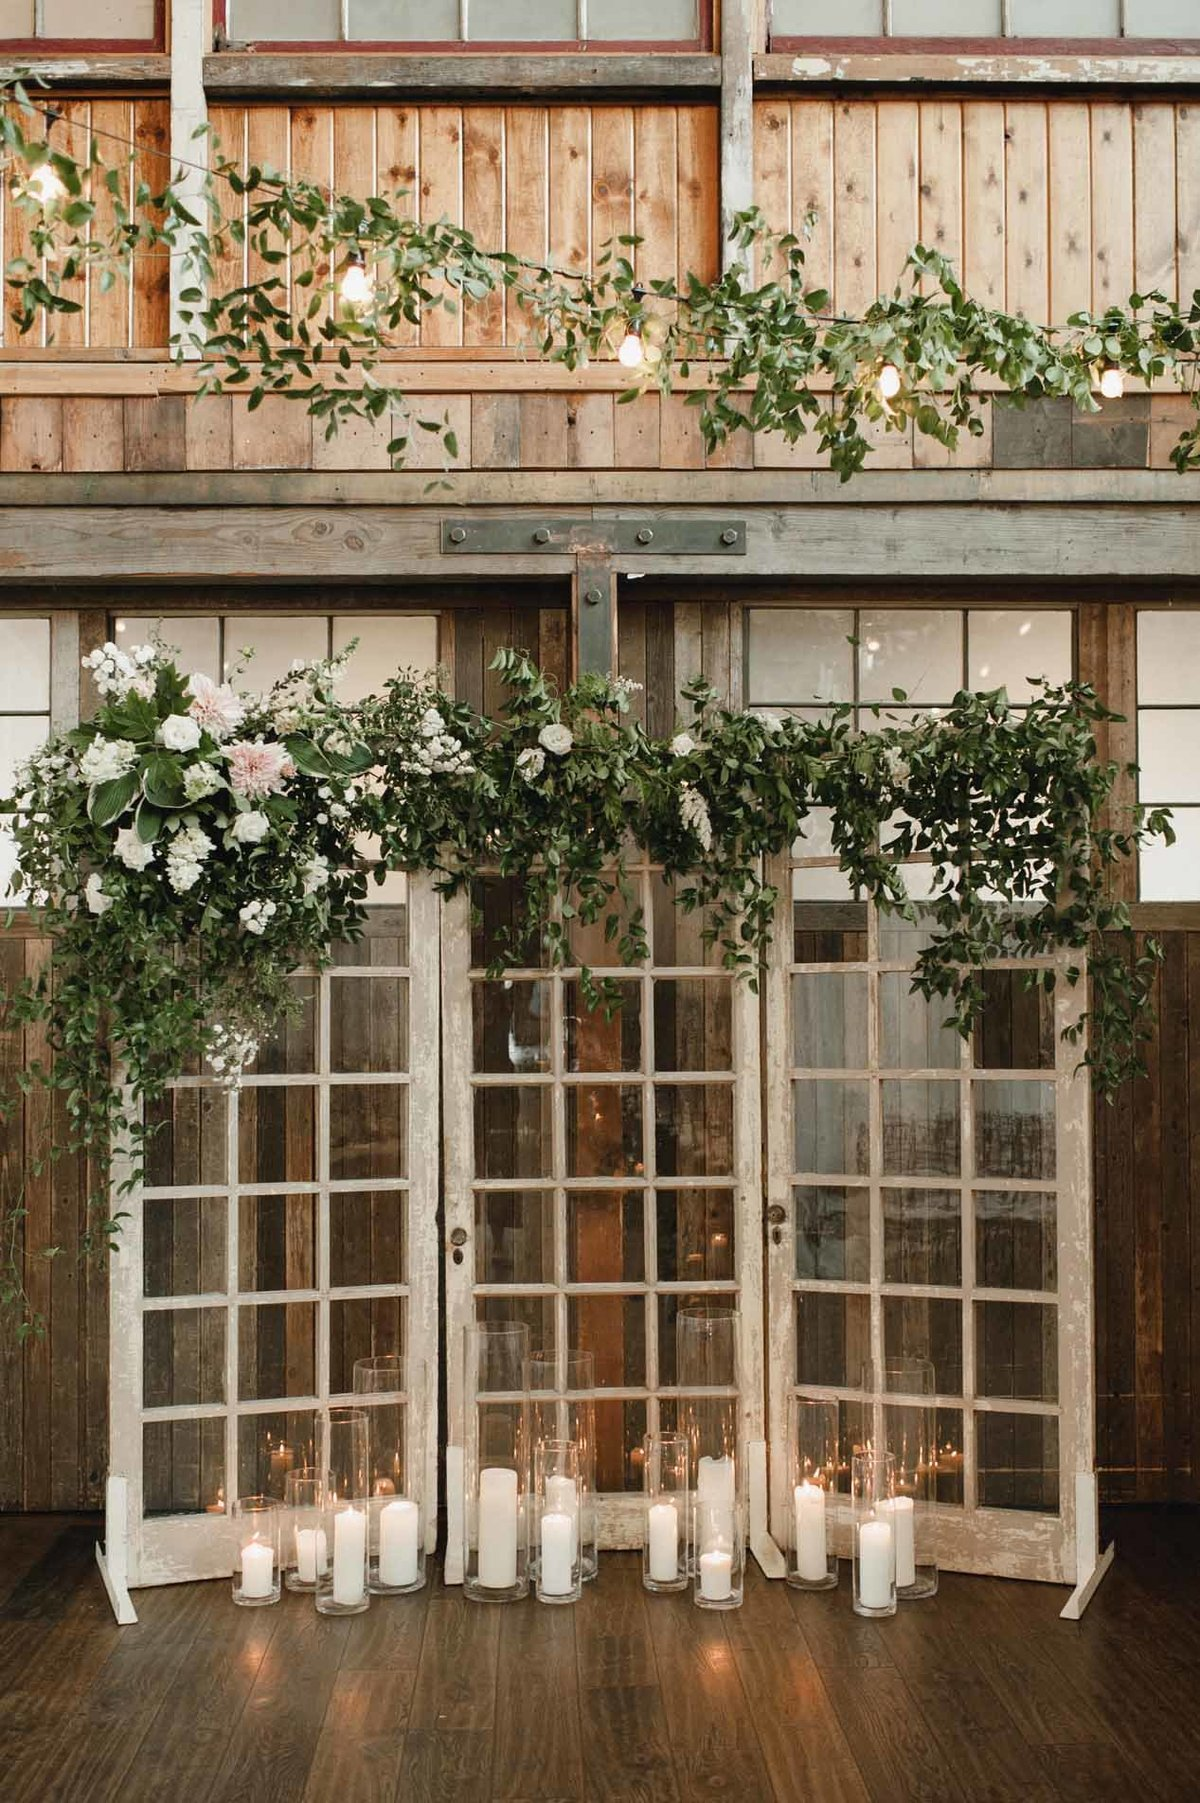 These reclaimed french doors that we covered in greens and cafe au lait dahlias make a striking wedding ceremony backdrop.